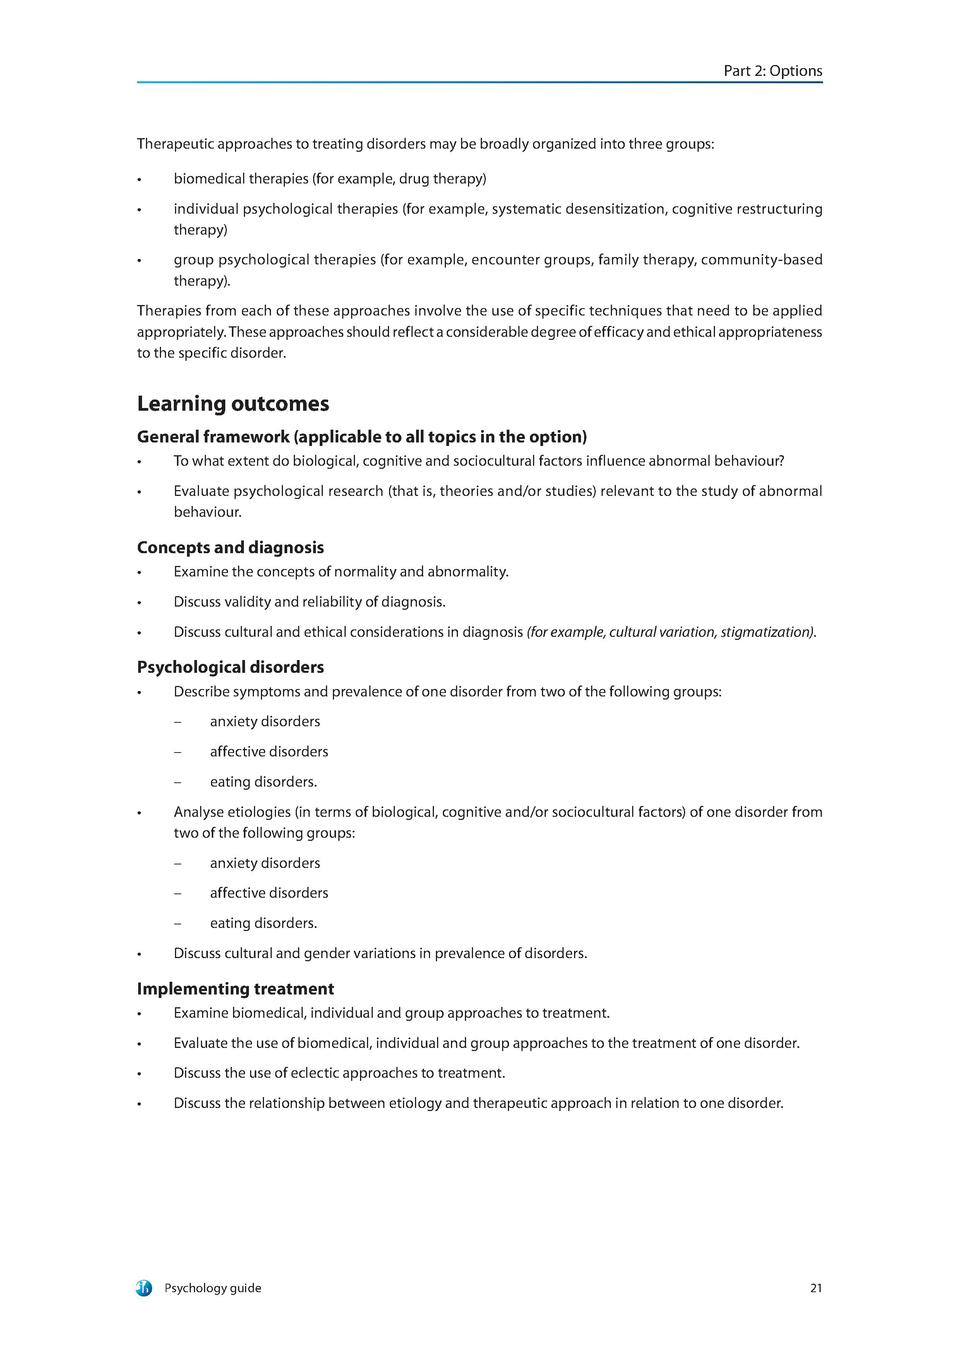 025 Abnormal Psychology Topics For Research Paper Vi71lfmq Unique Full